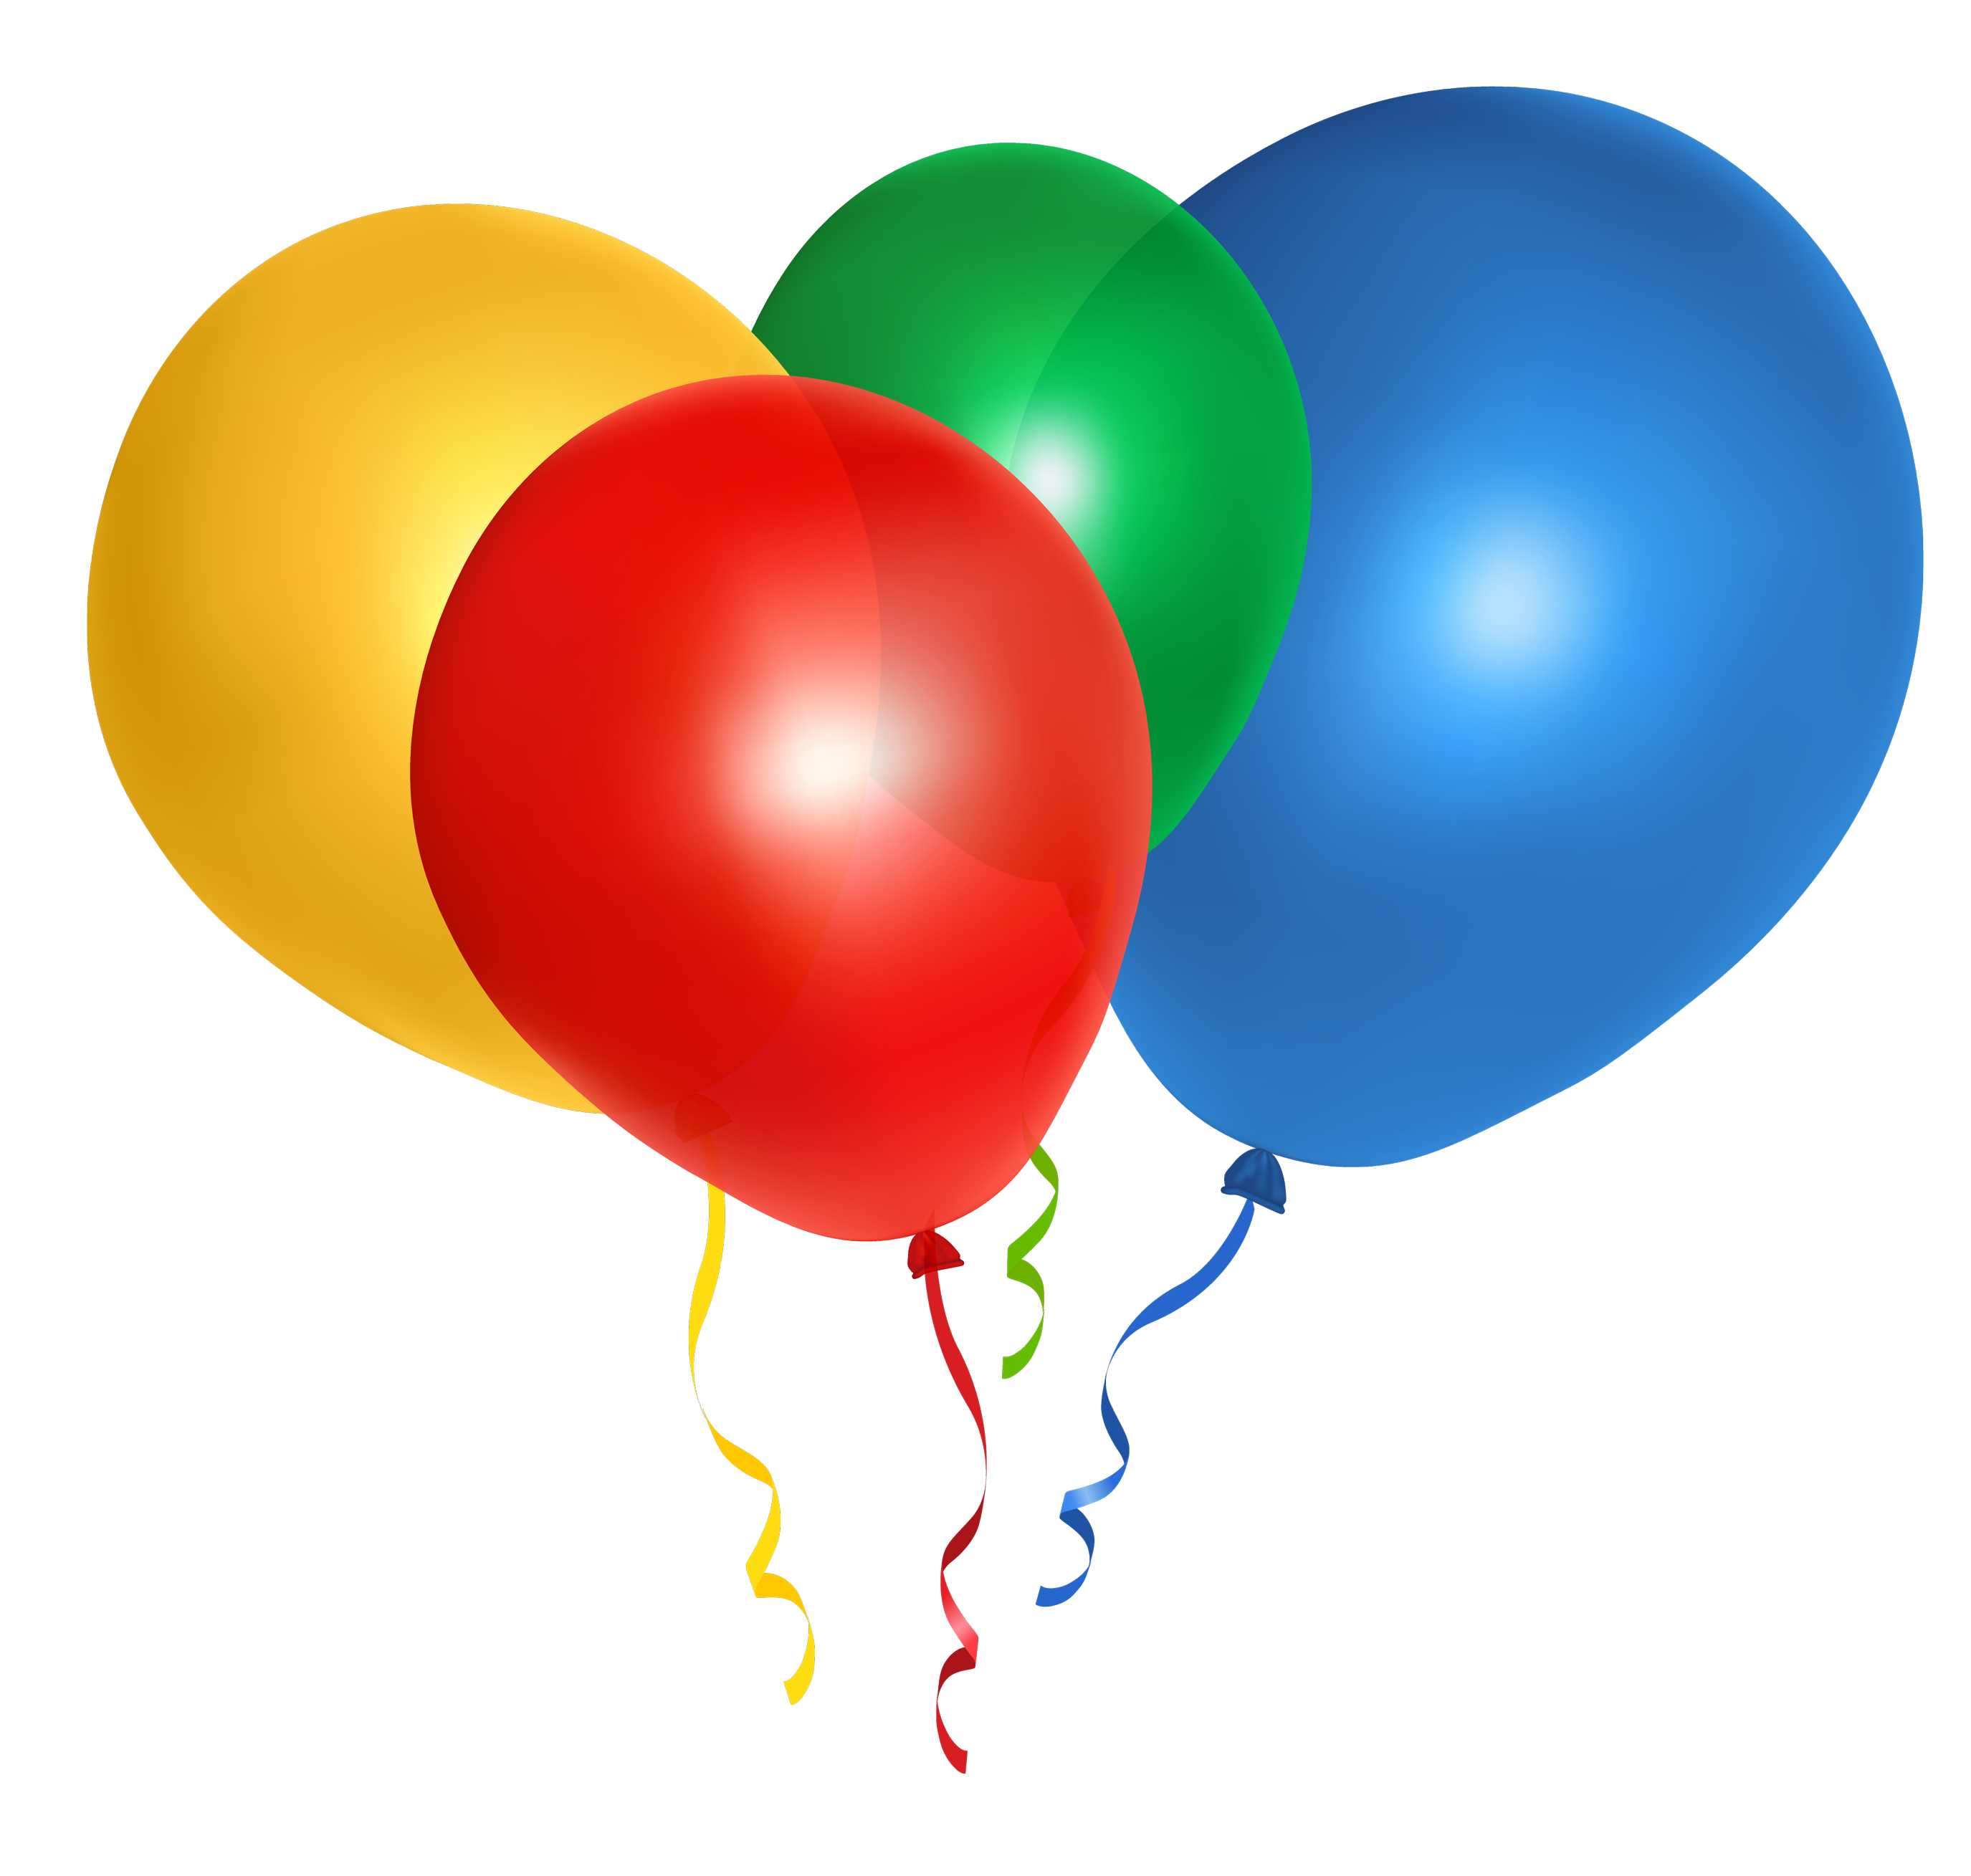 Balloon PNG HD